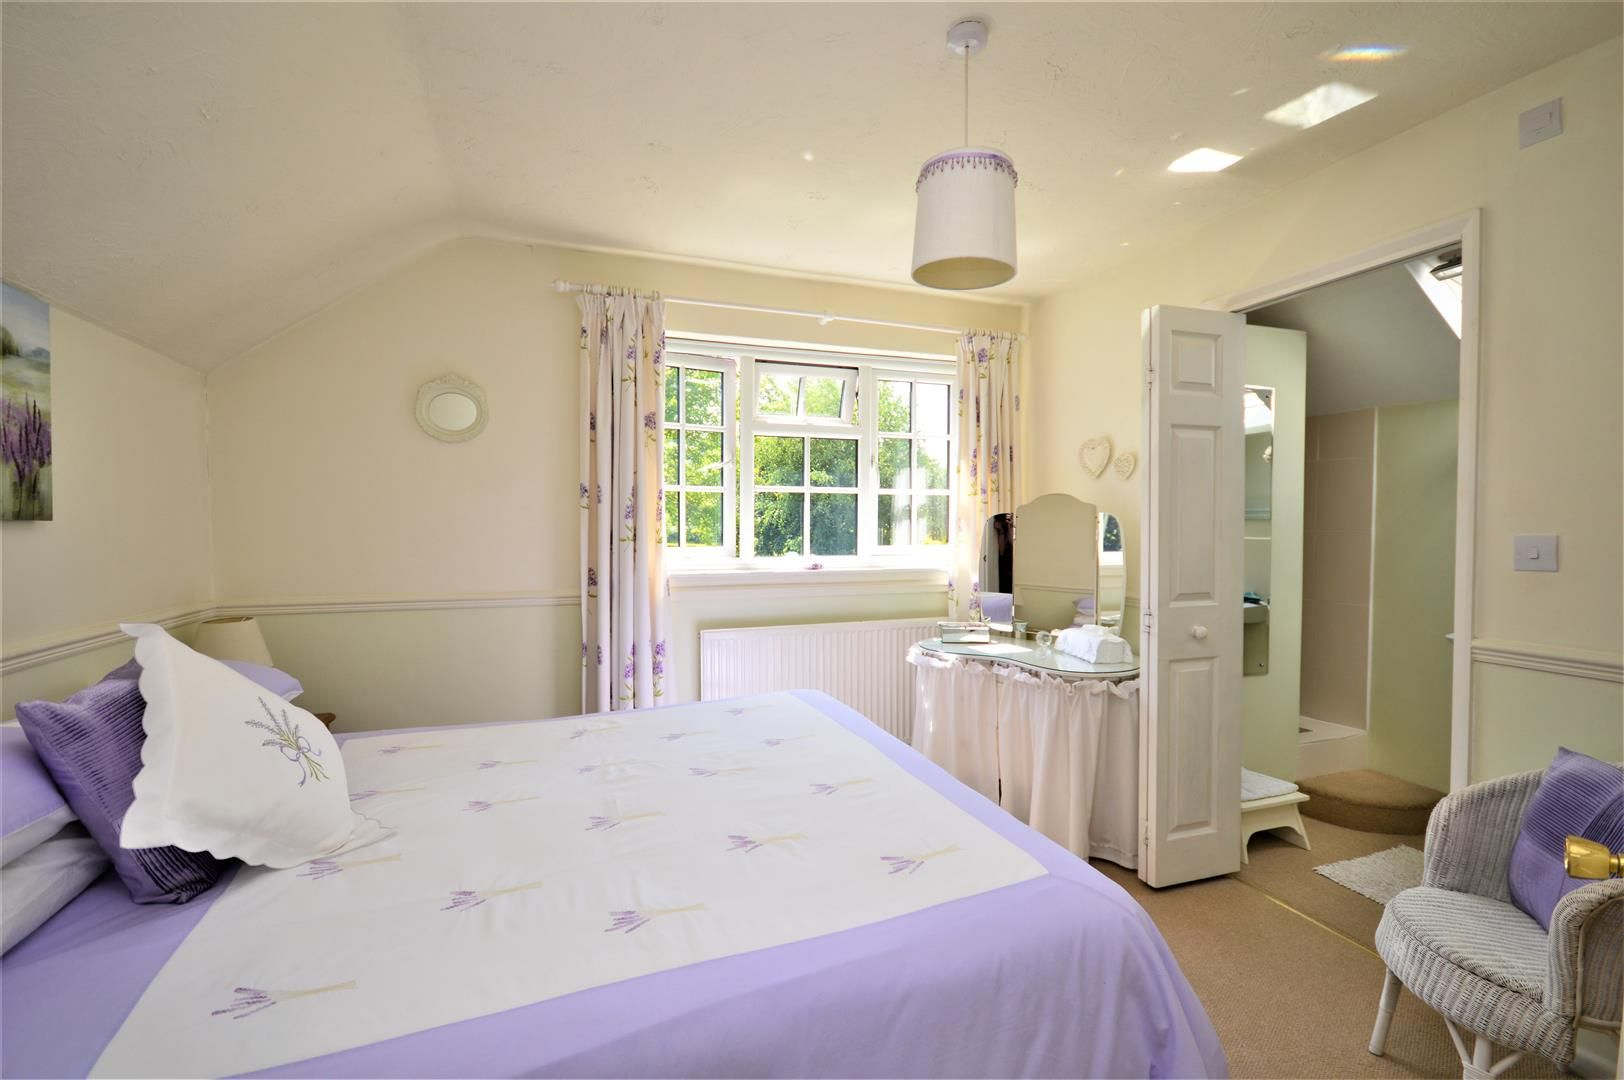 3 bed semi-detached for sale in Madley  - Property Image 10